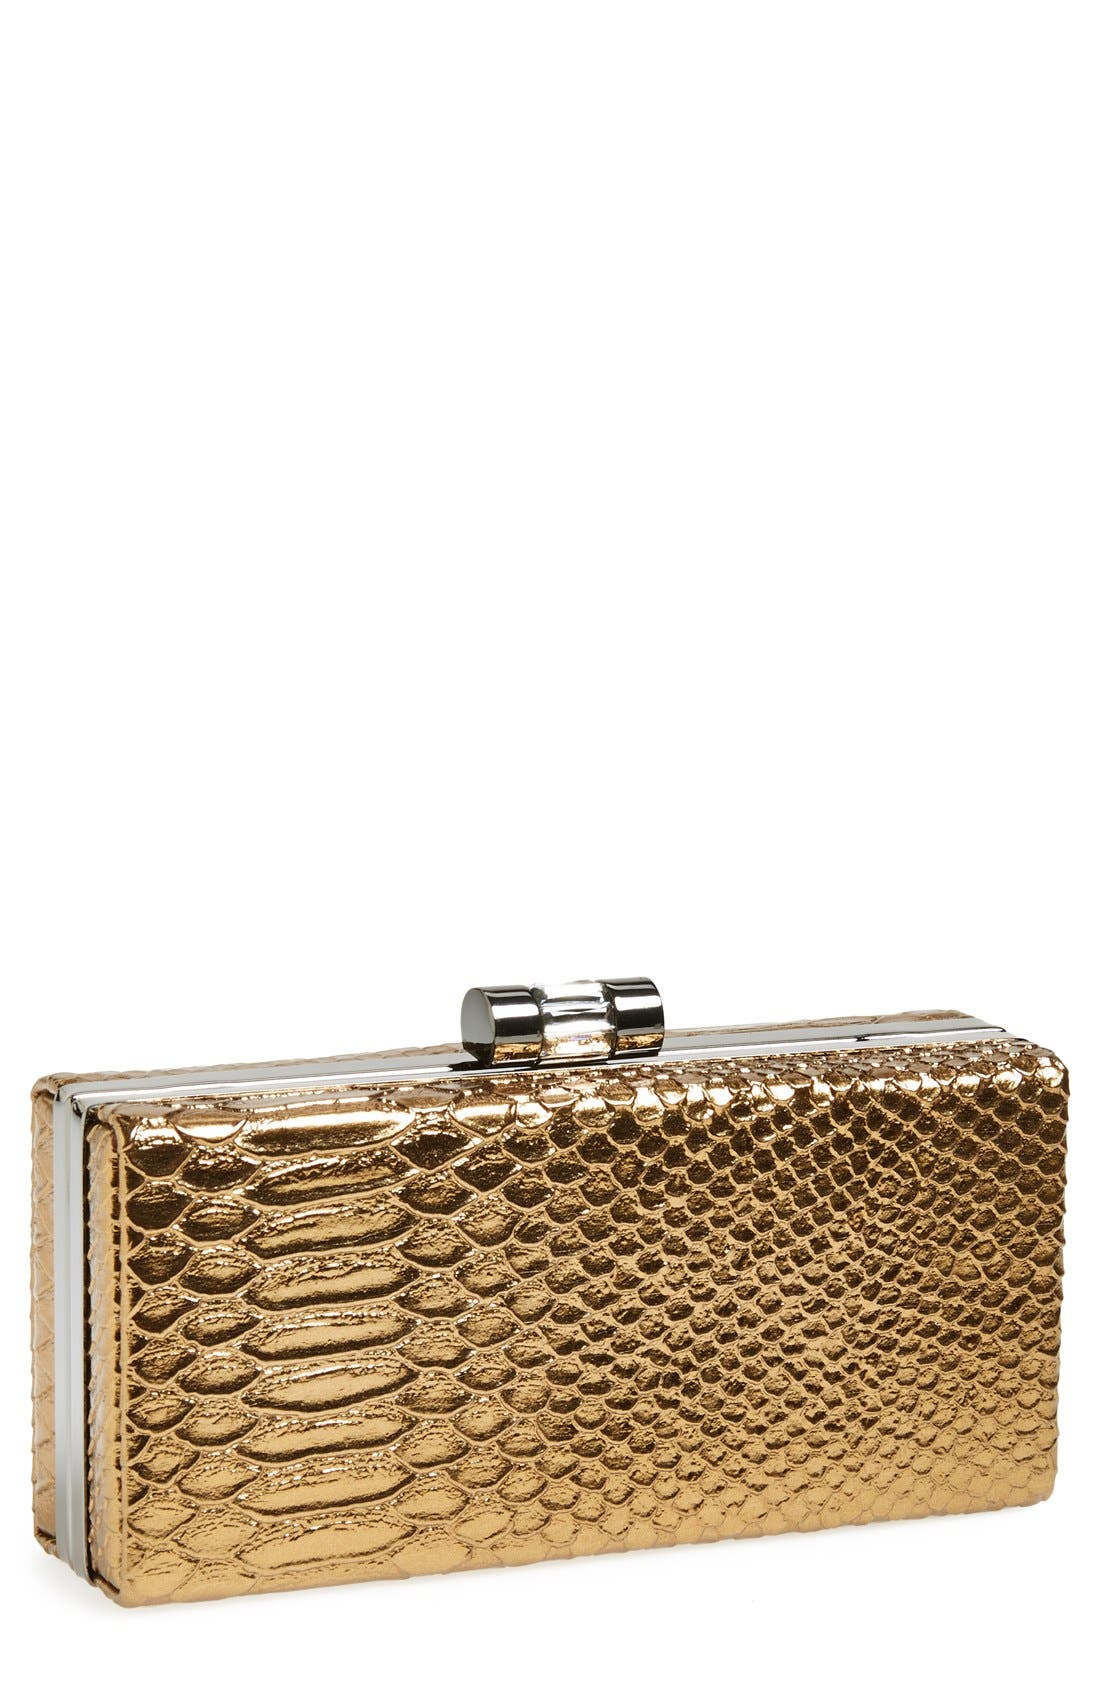 Alternate Image 1 Selected - Jessica McClintock Snake Embossed Box Clutch